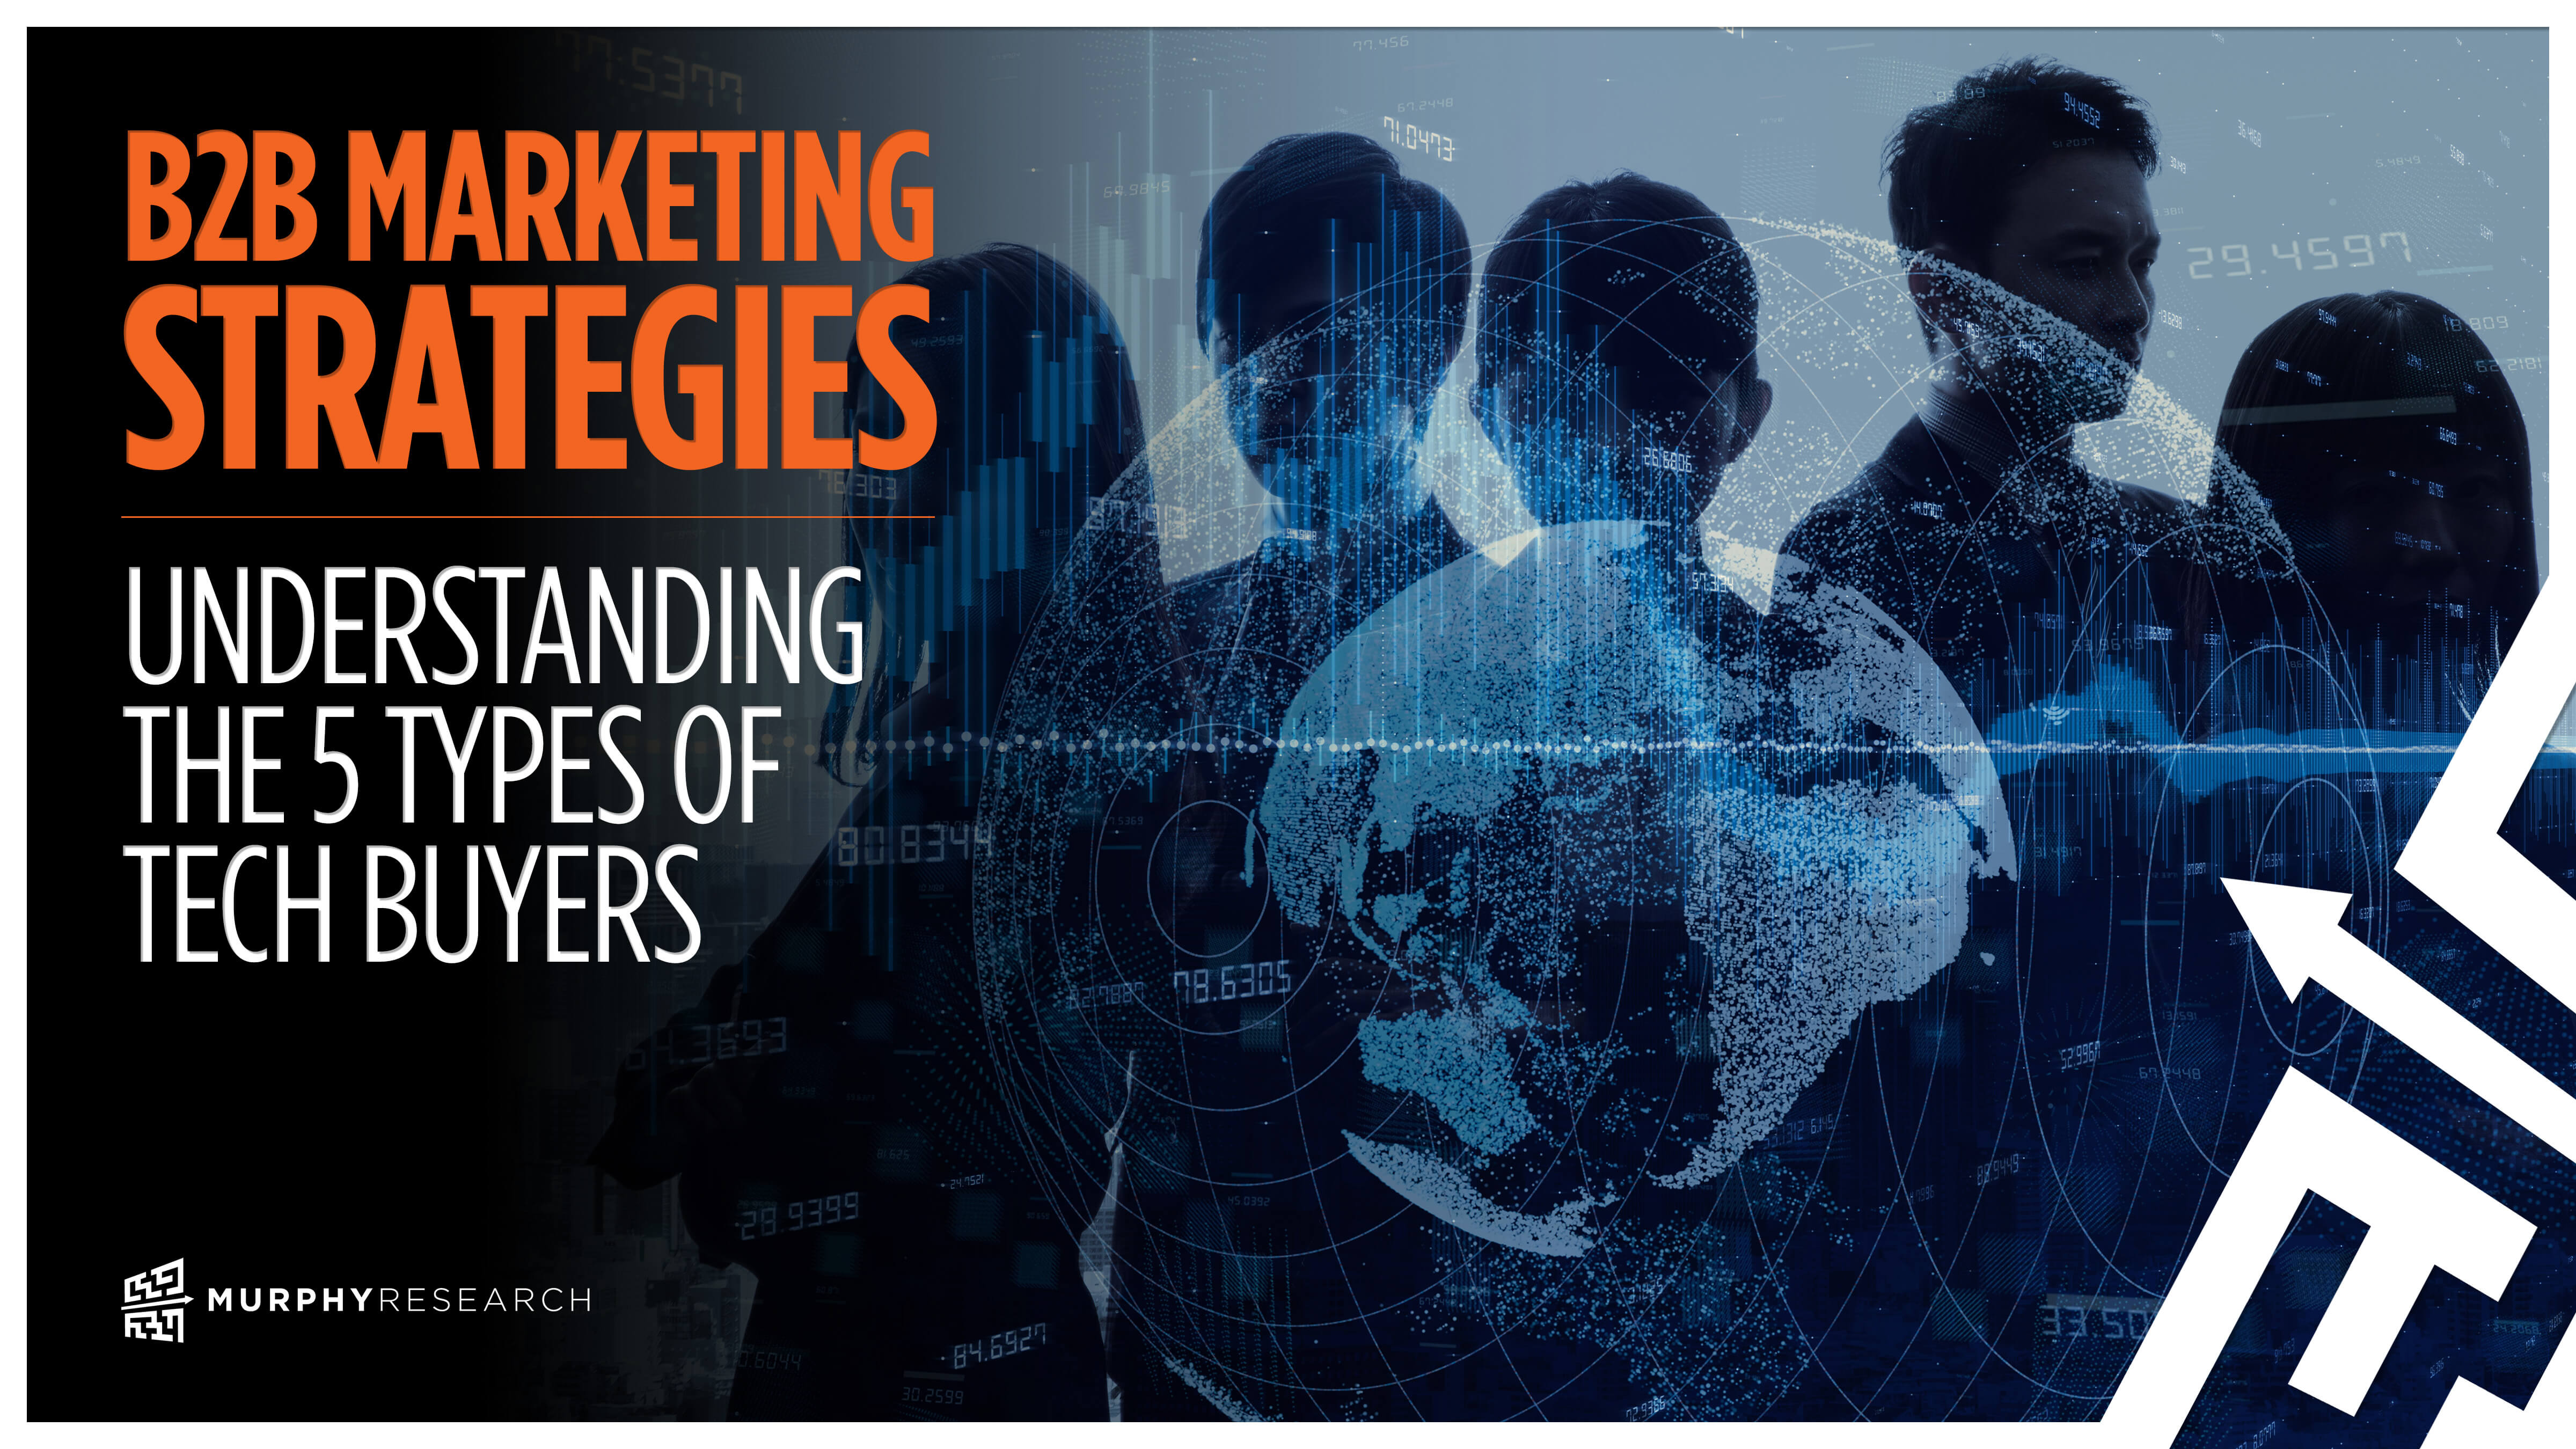 B2B Marketing Strategies: Understanding the 5 Types of Tech Buyers